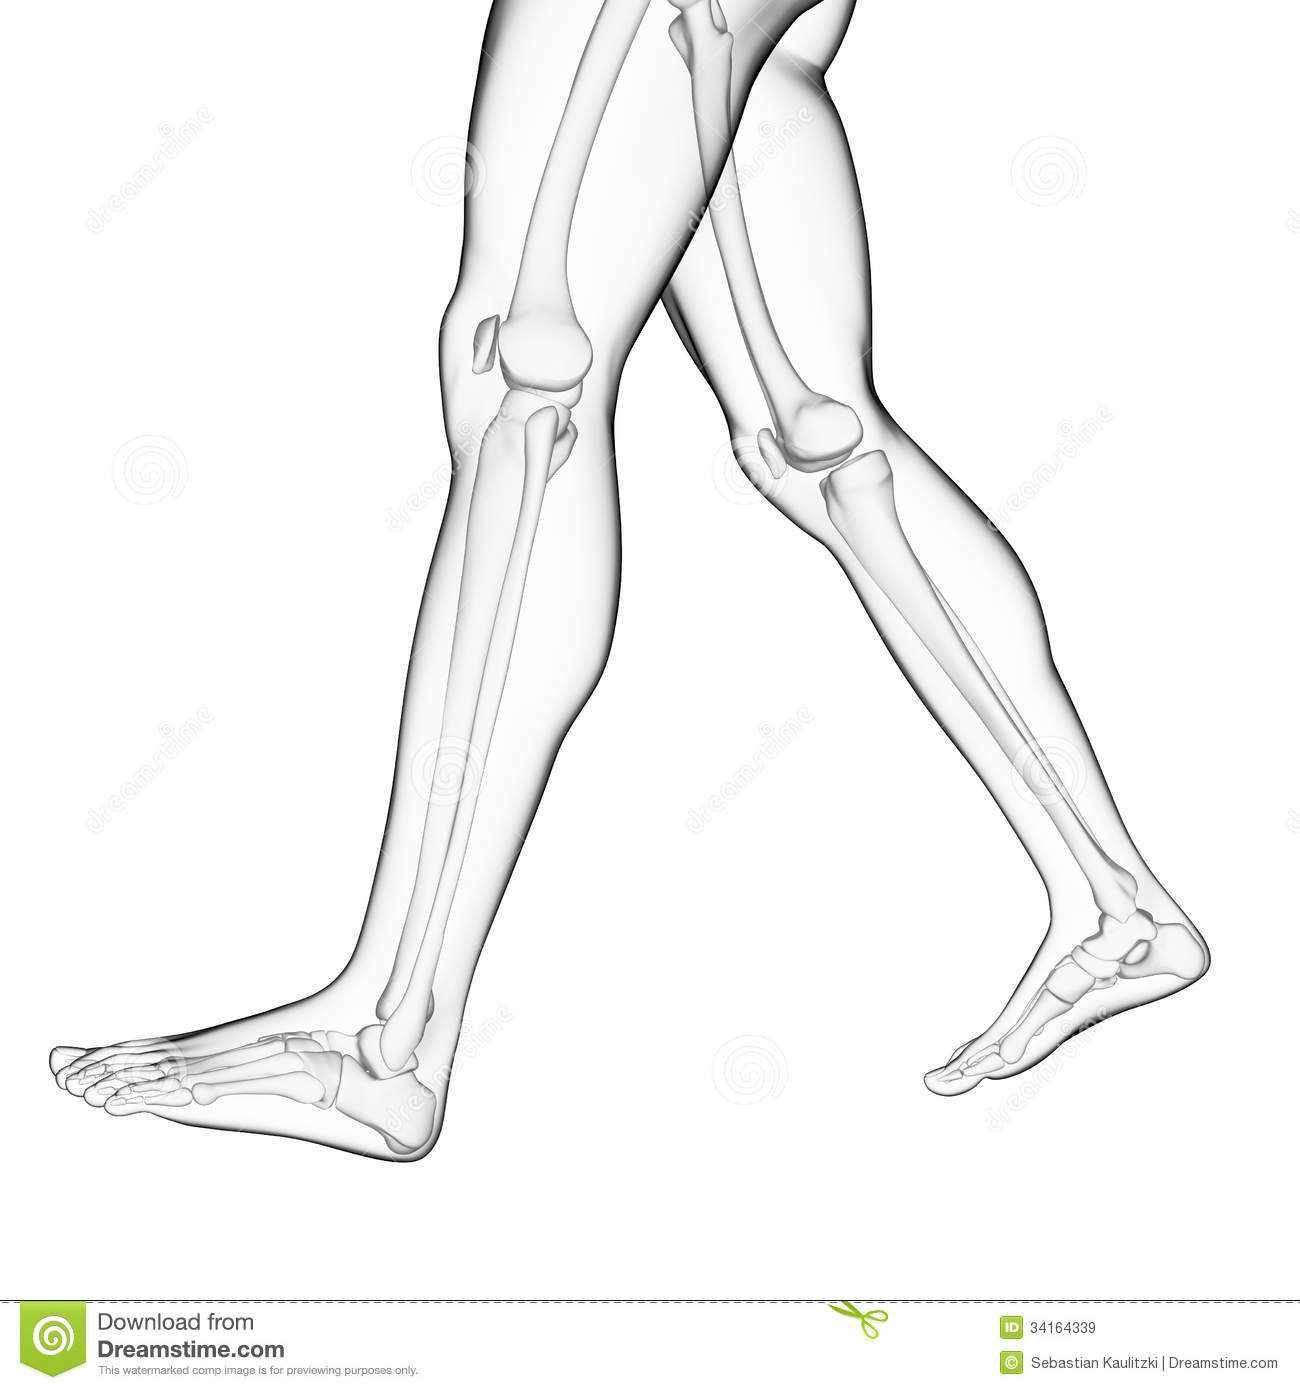 The Leg Bones Royalty Free Stock Images   Image  34164339